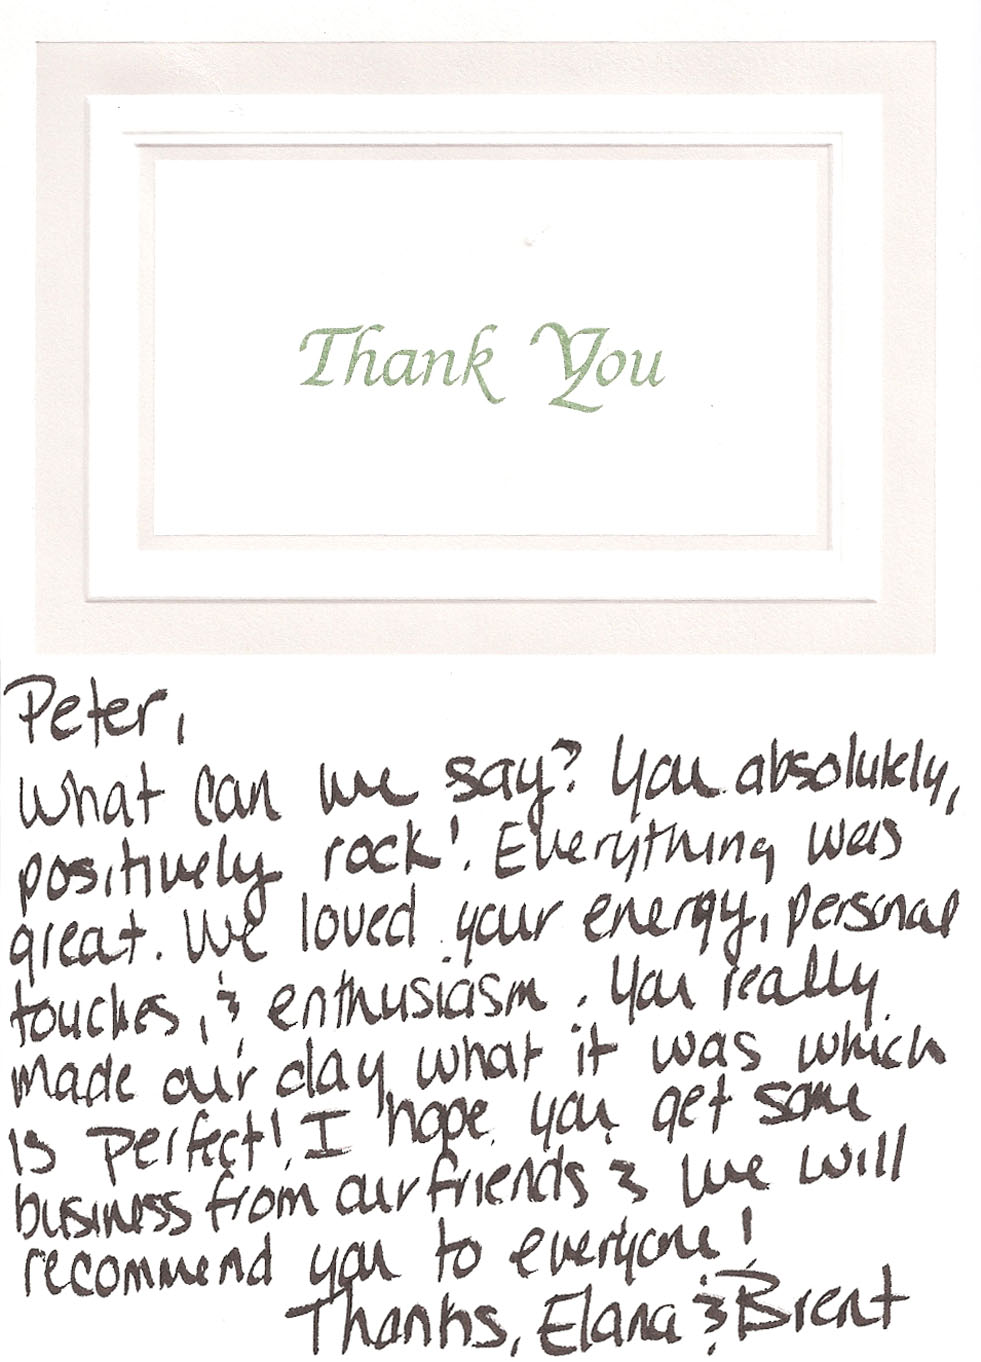 Brent & Elana's Thank You Card